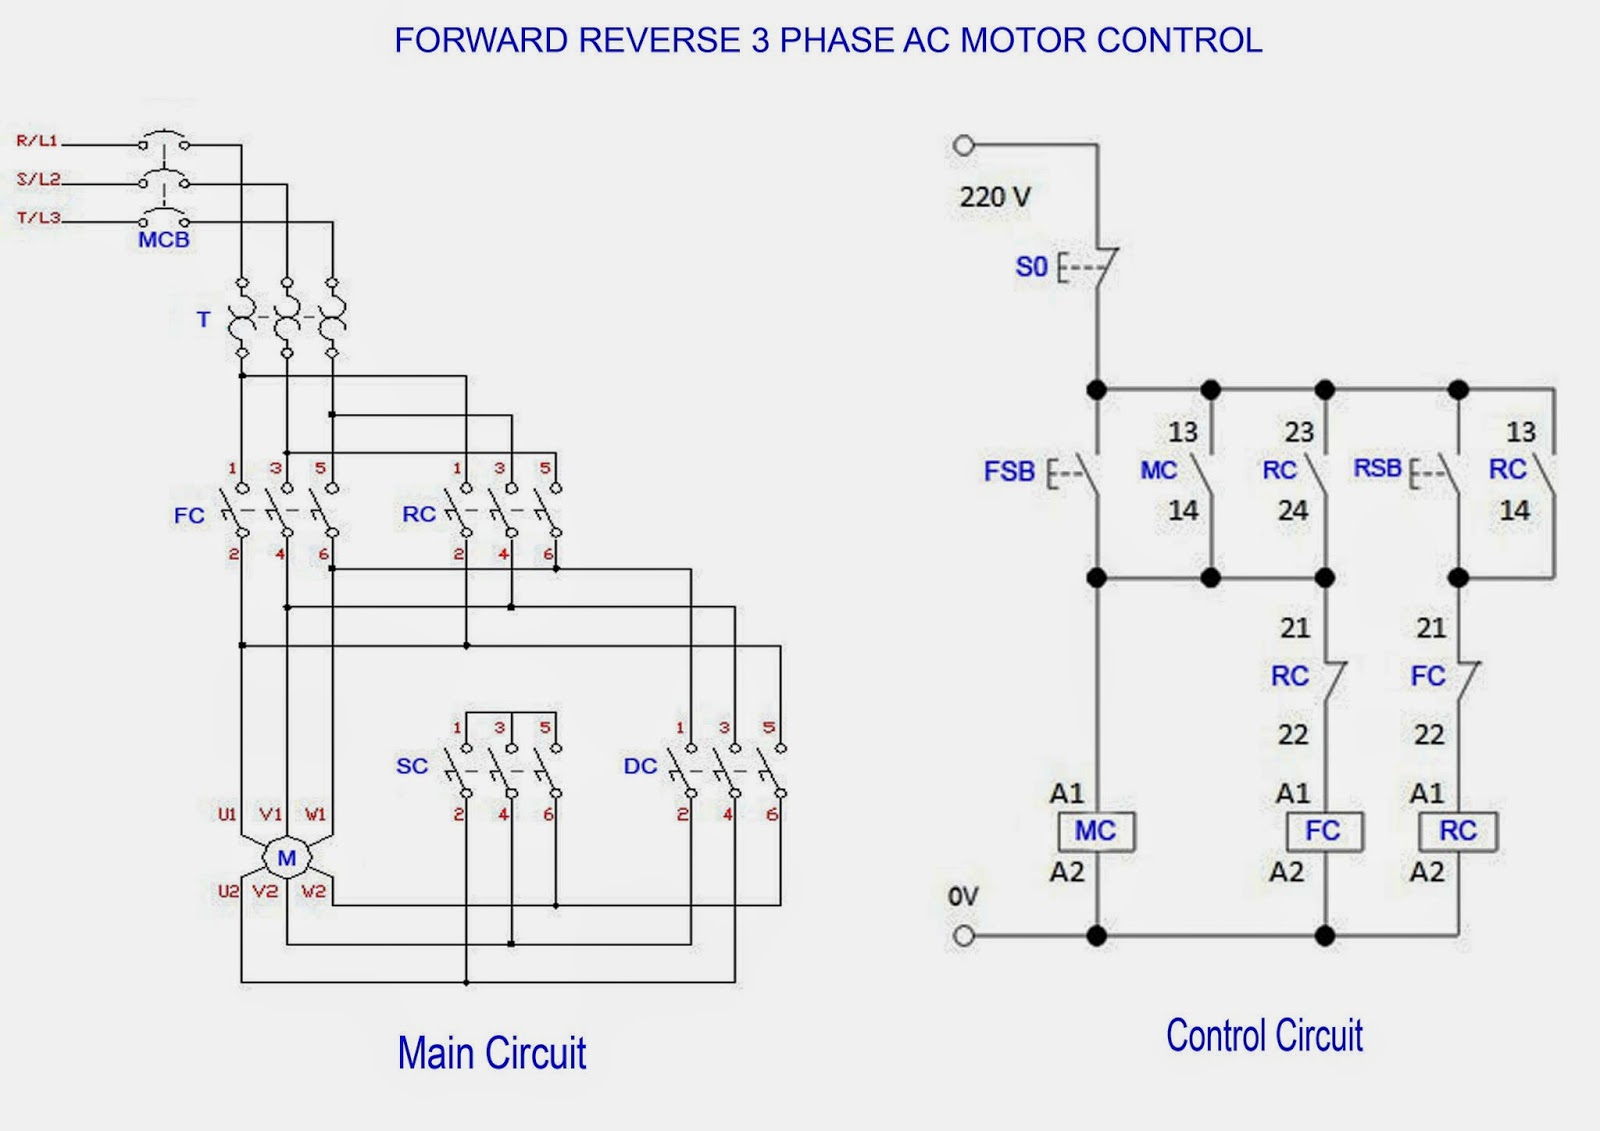 Three Phase Wiring Diagram Motor | Schematic Diagram - Three Phase Motor Wiring Diagram